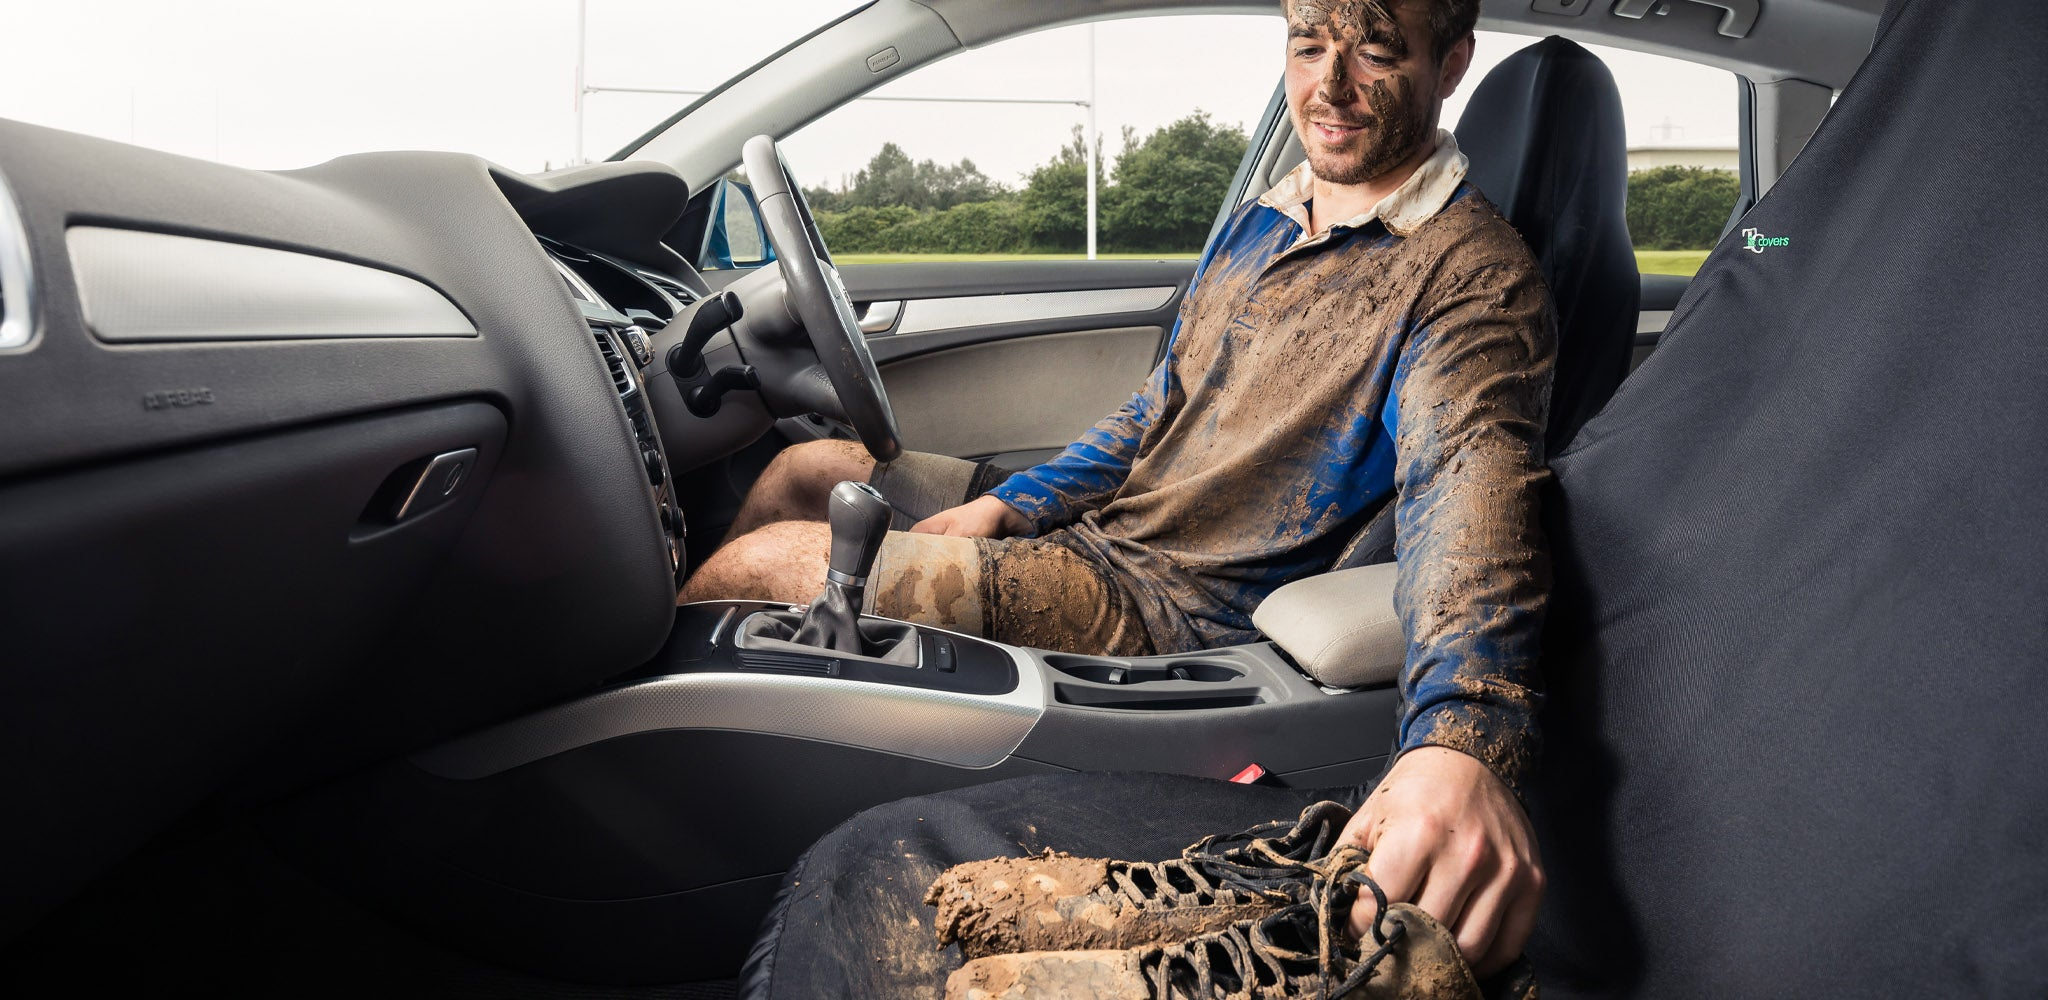 Muddy boots on seat with rugby player